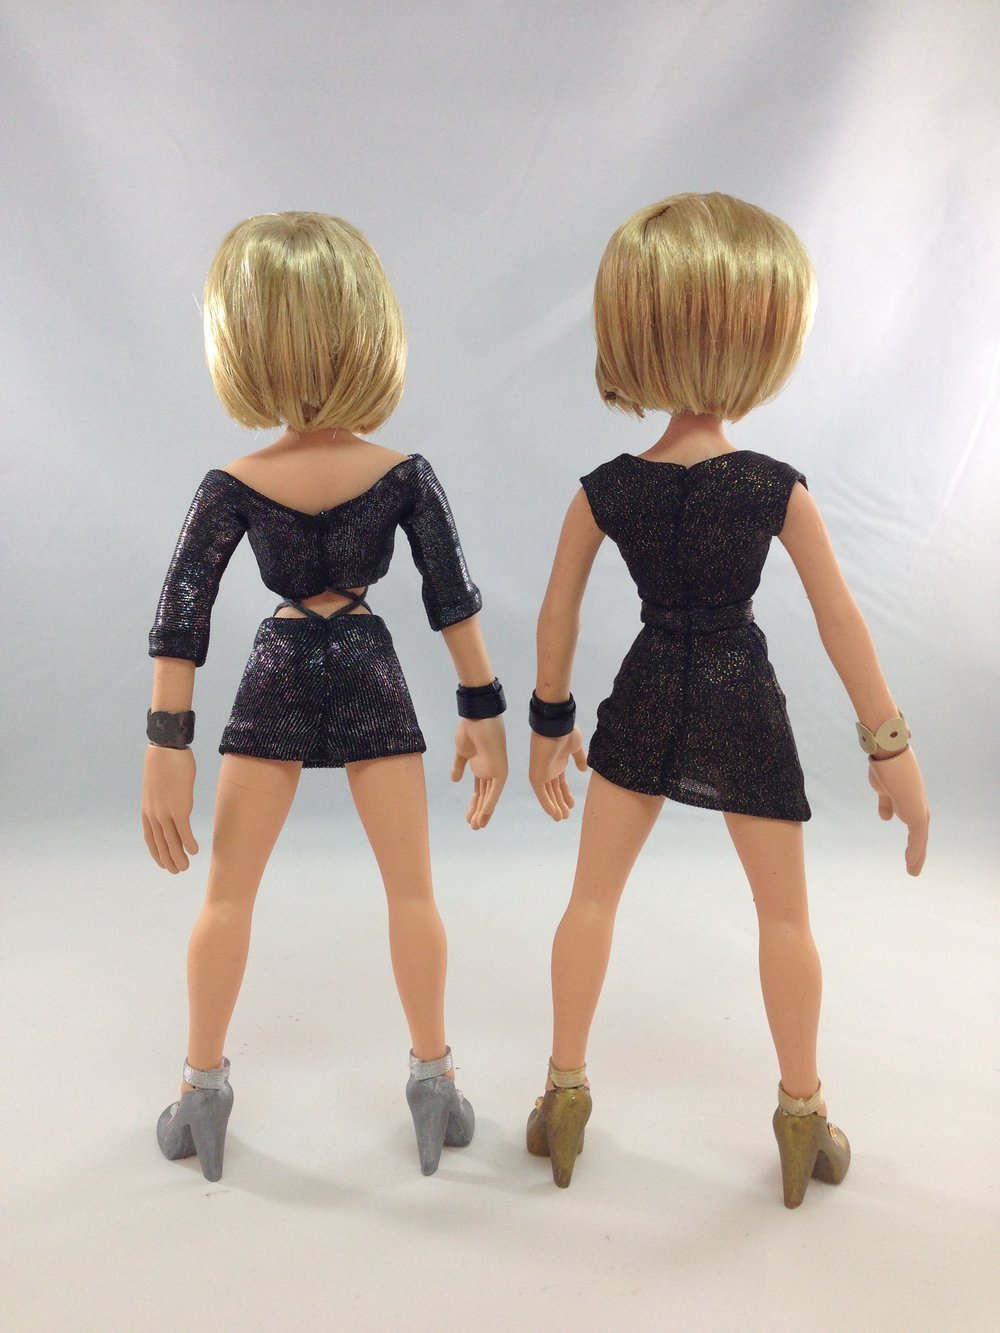 Twins - SuperMansion 2